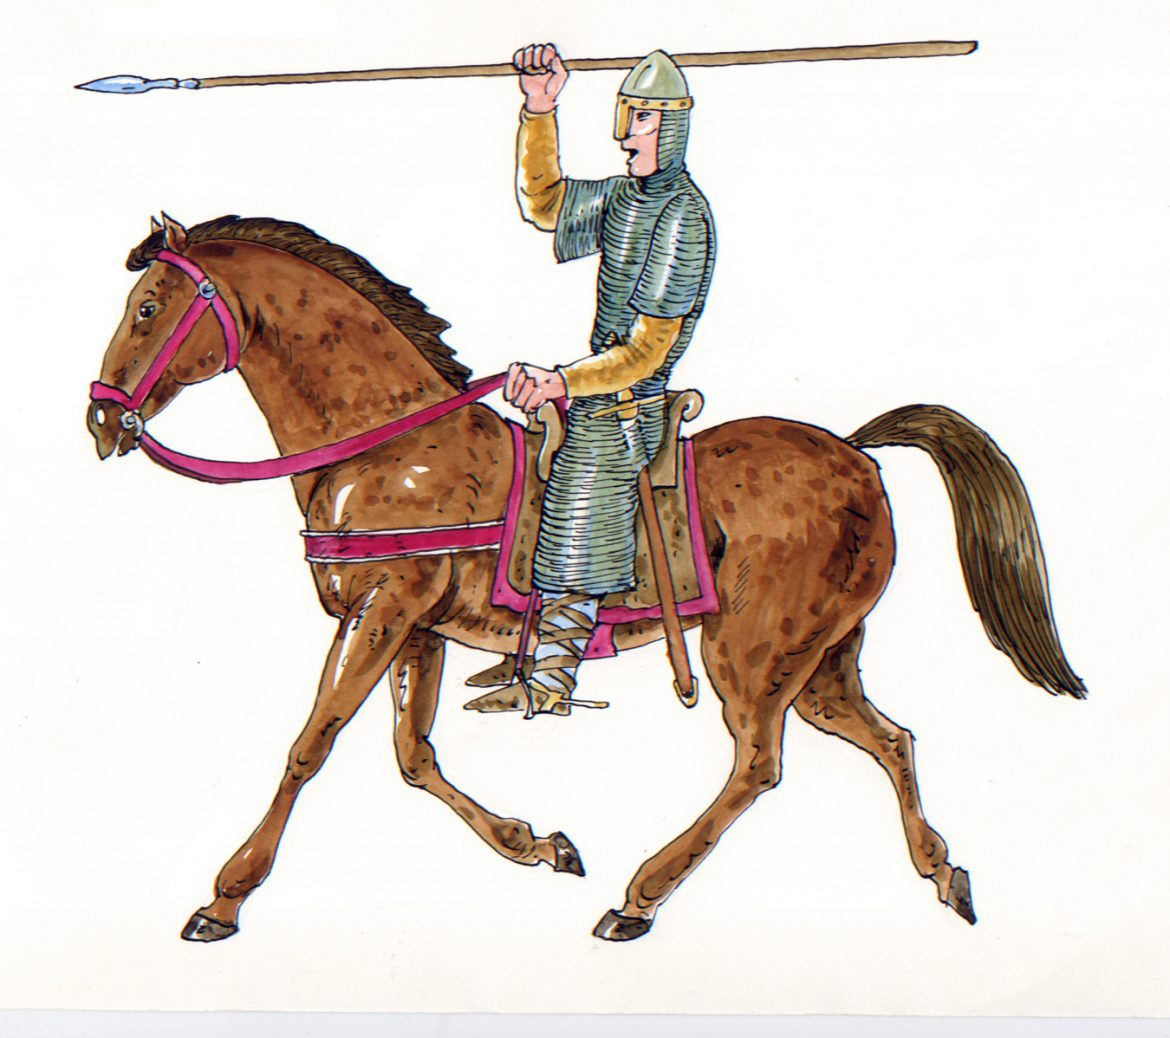 illustrazioni - cavaliere normanno hastings 1066